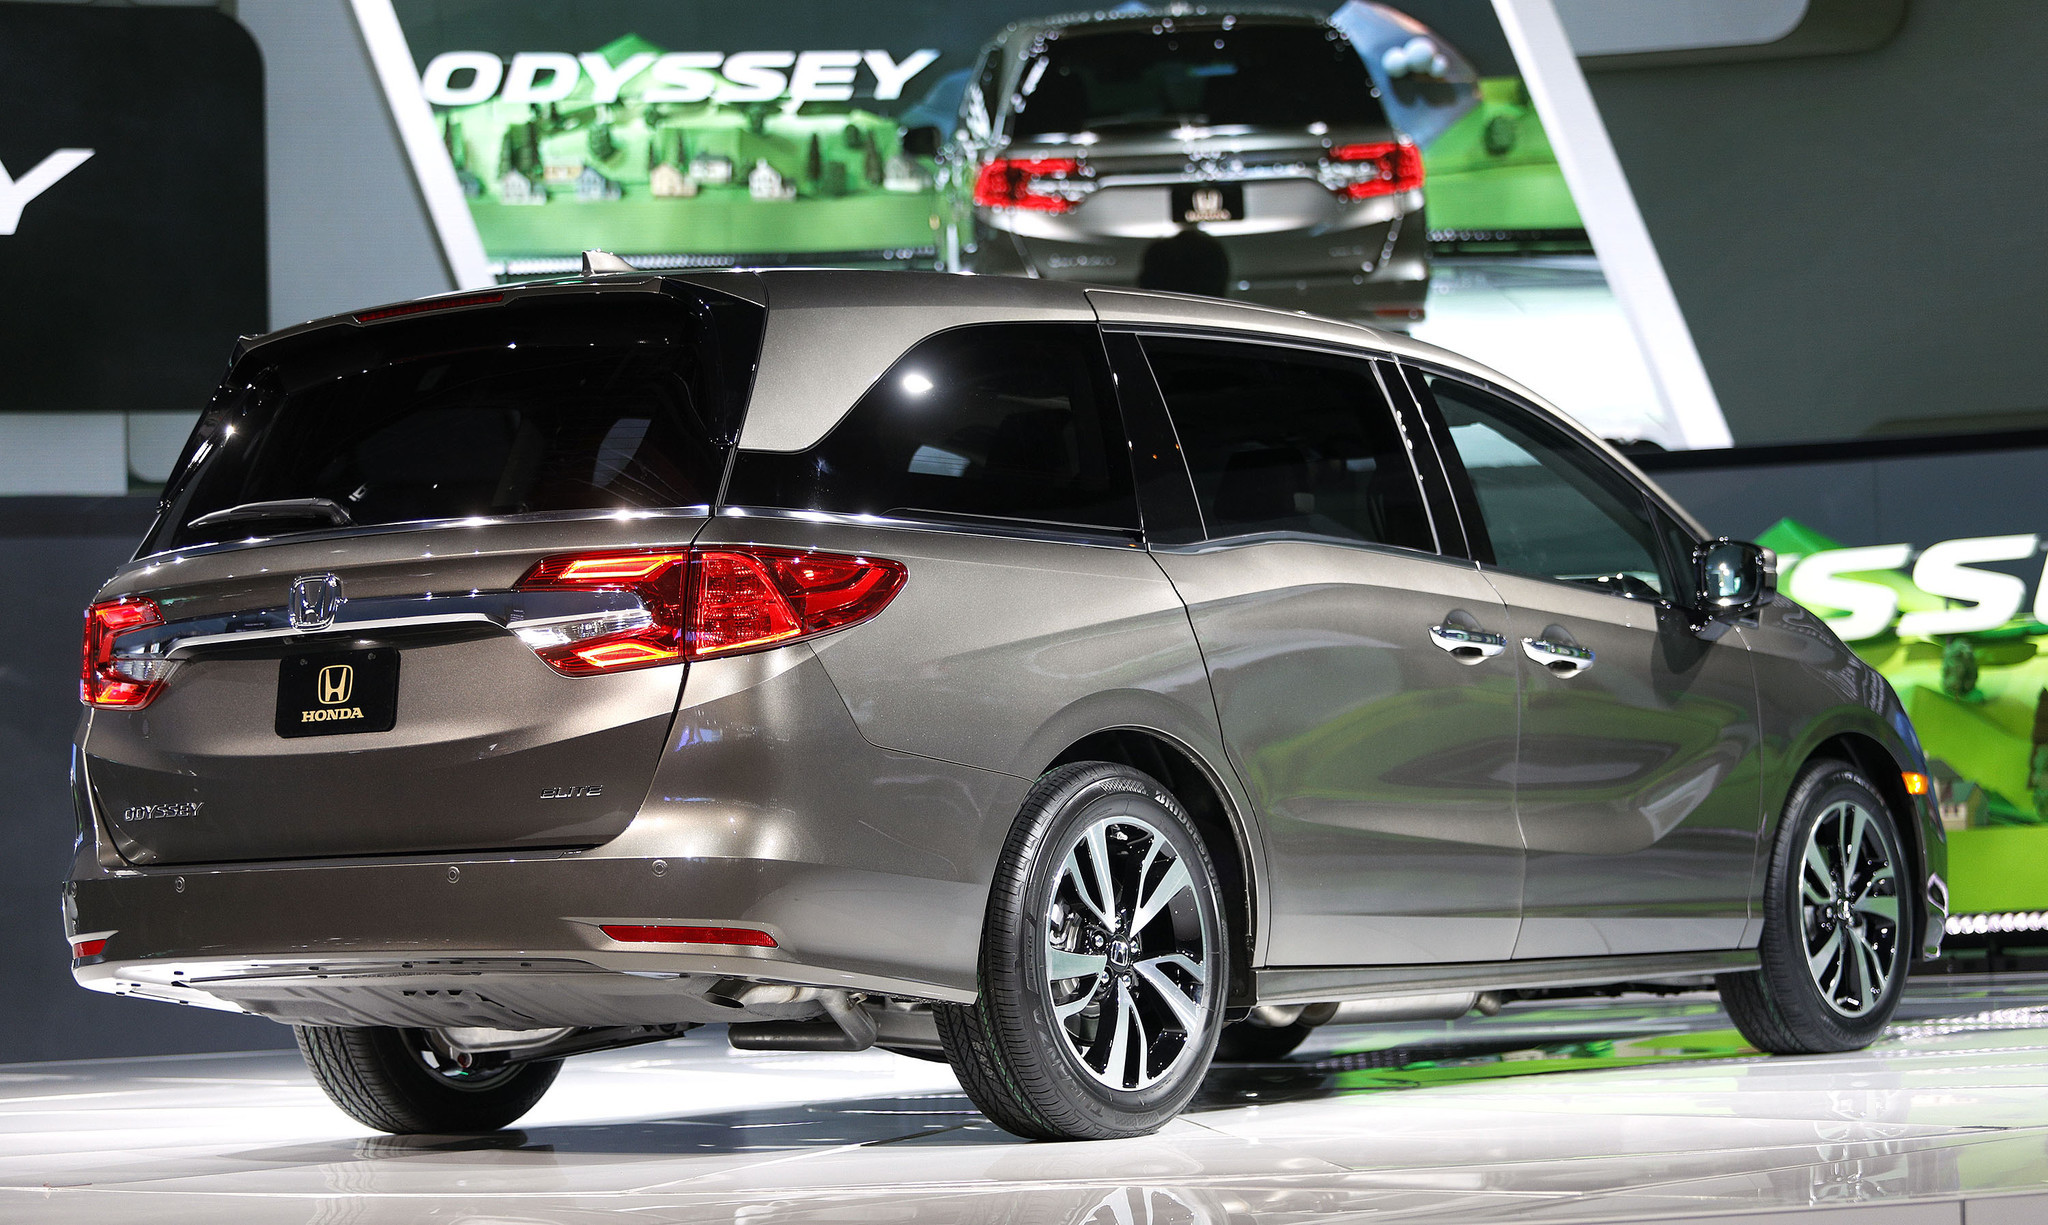 Honda launches 2018 Odyssey minivan with new seats transmission